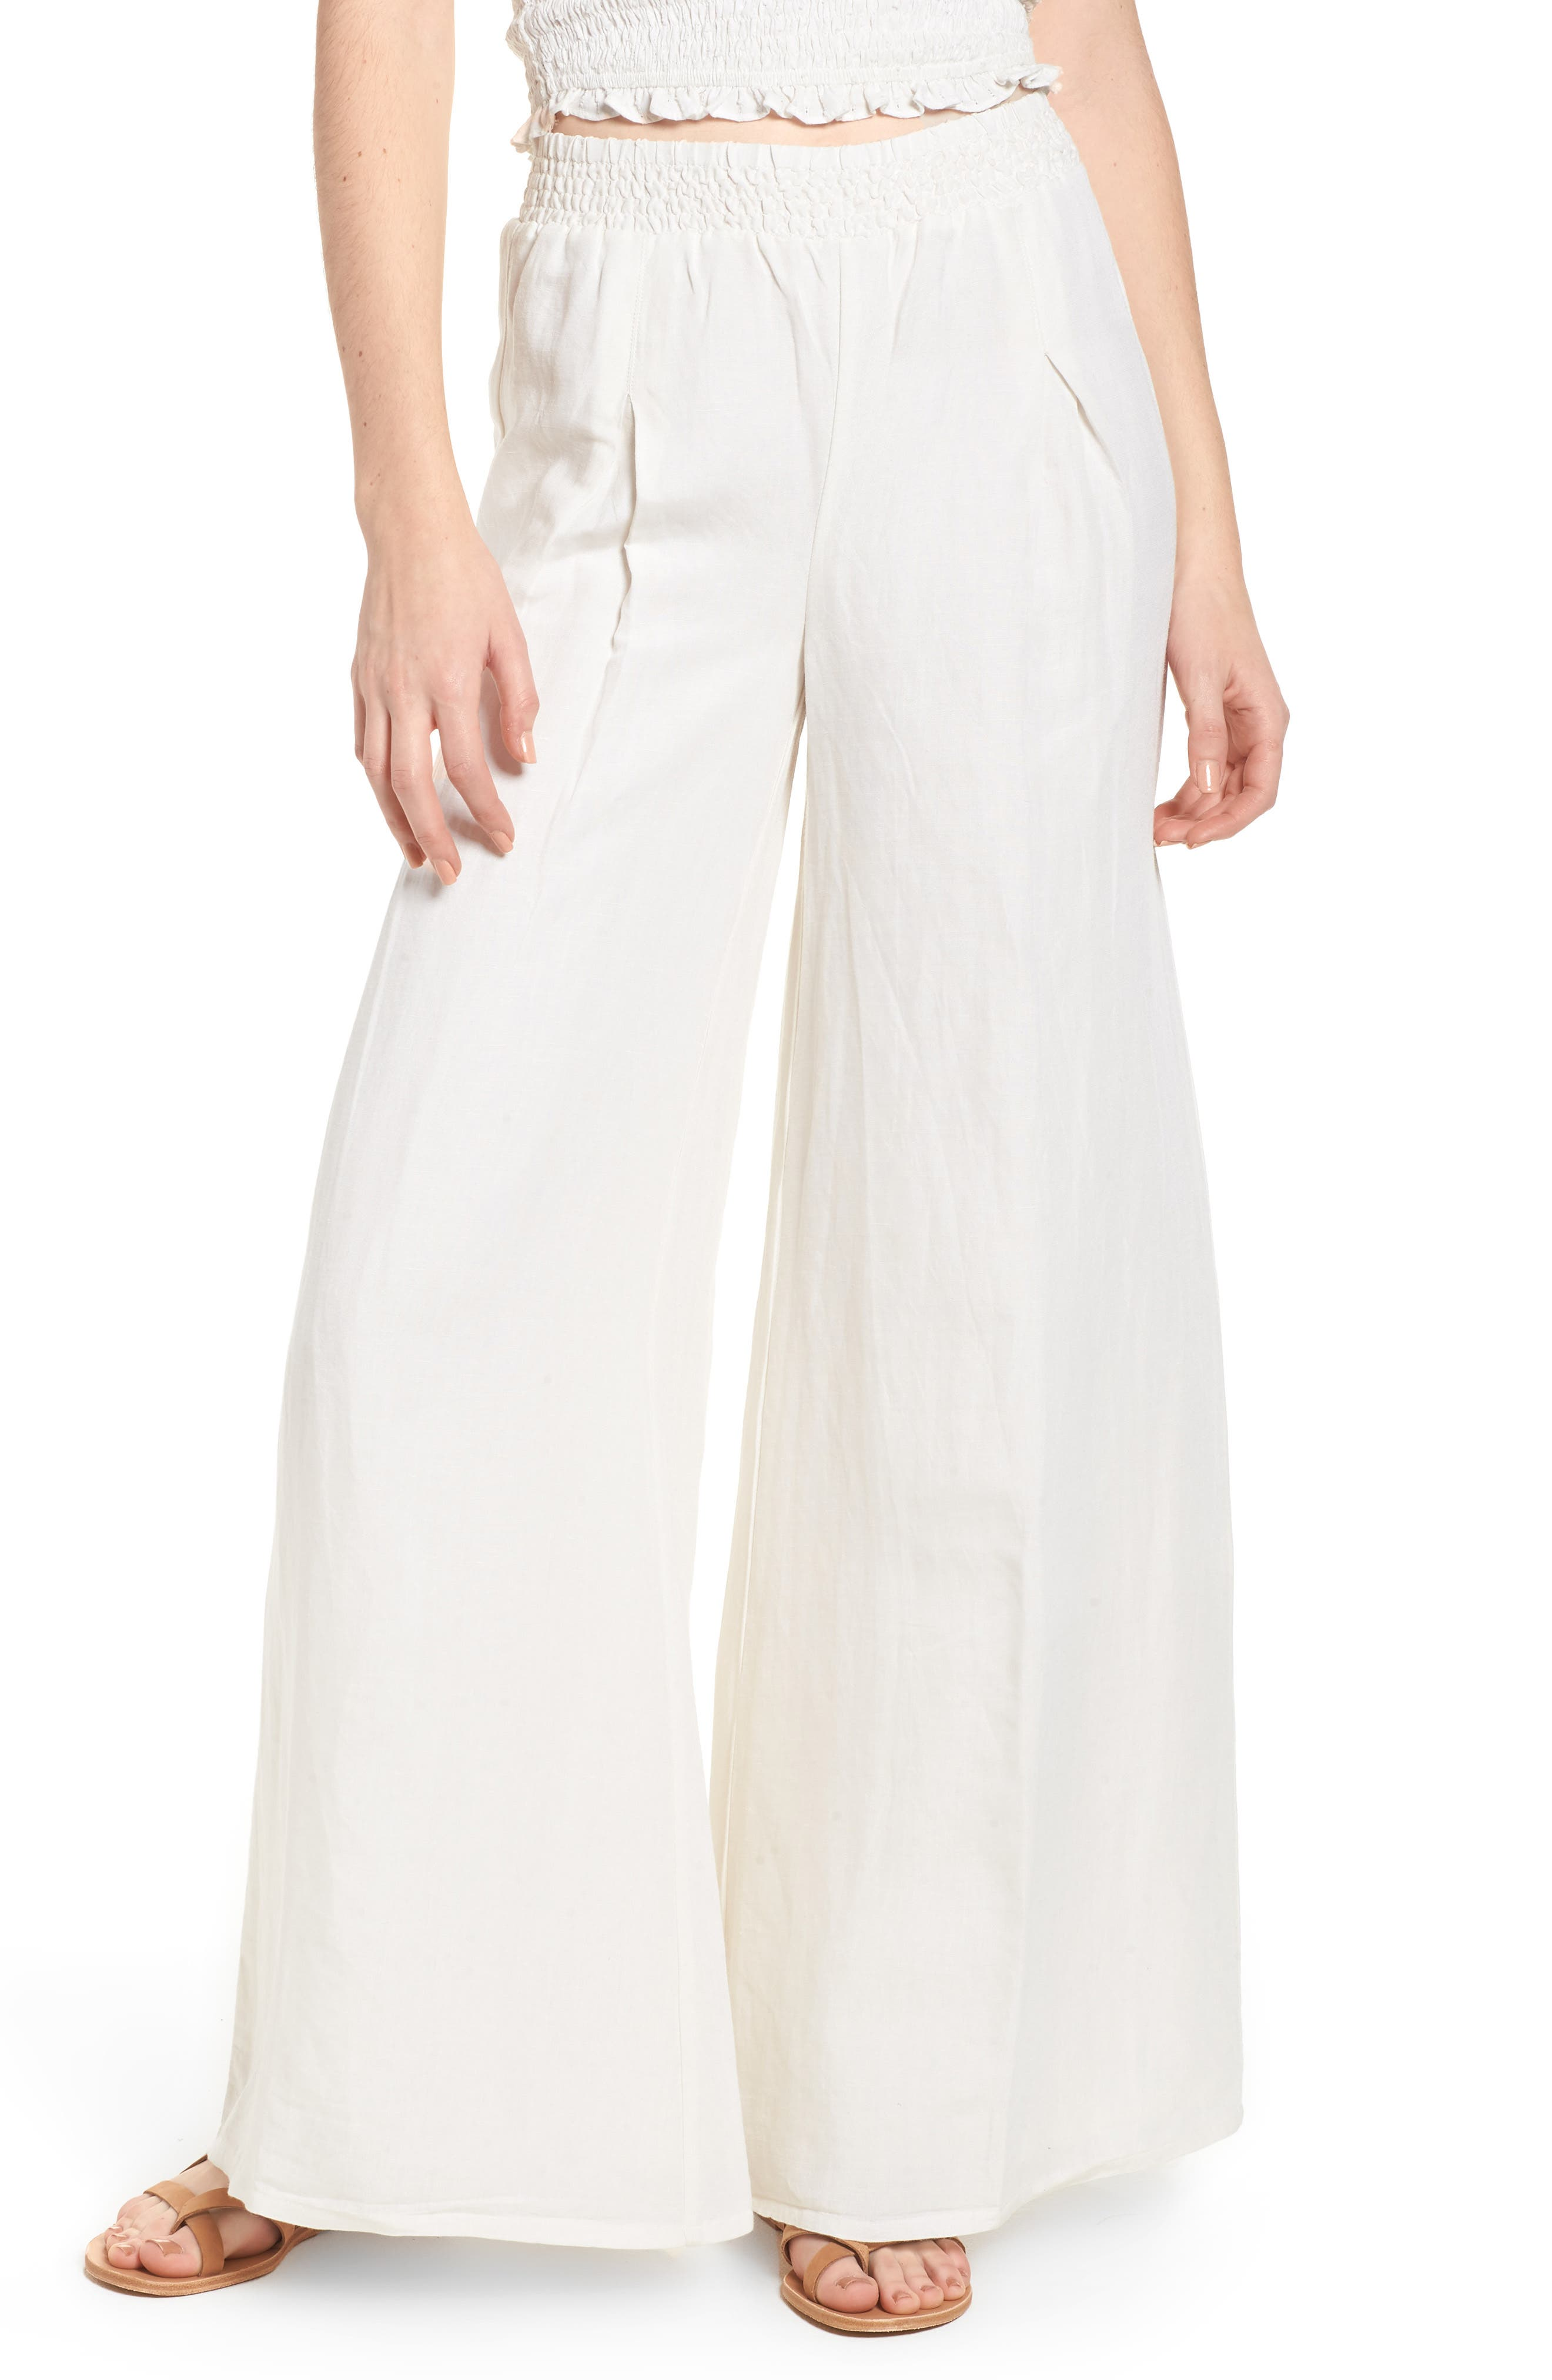 High Roads Smocked Wide Leg Pants,                         Main,                         color, 190